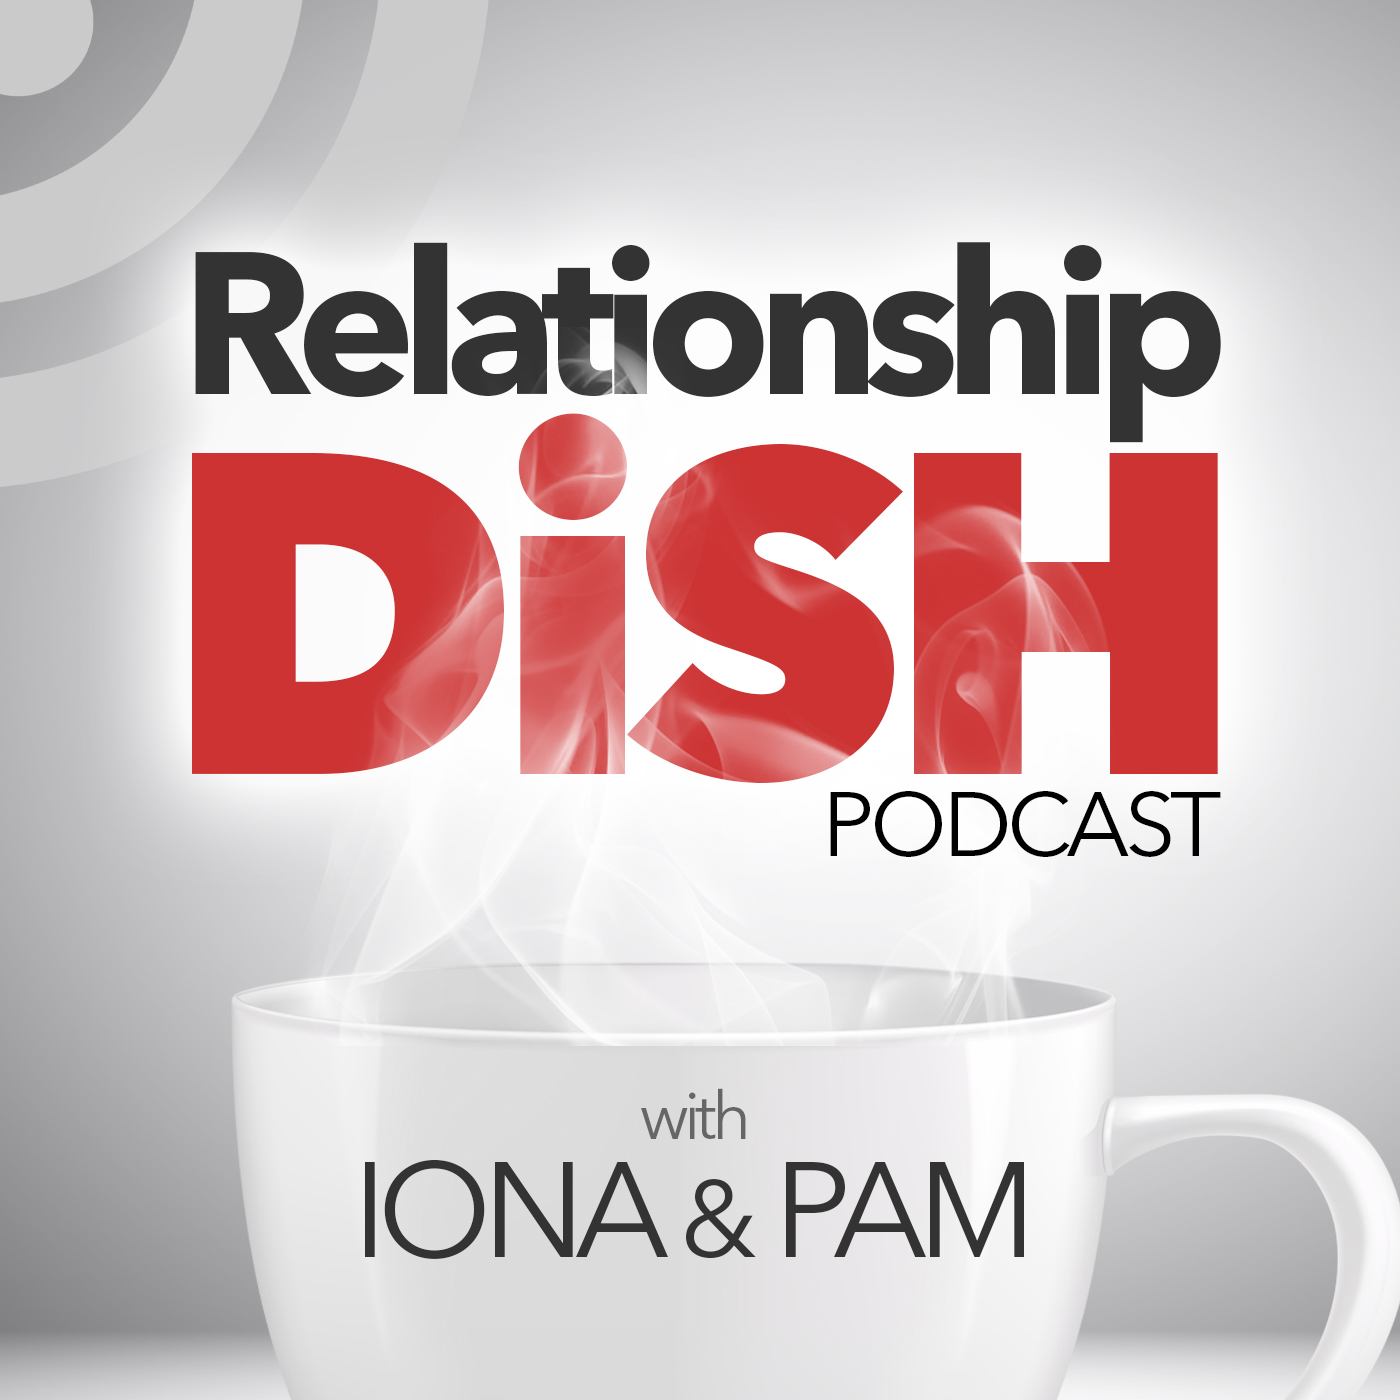 Relationship Dish - ep 85 / Have You Any Dreams You'd Like to Sell